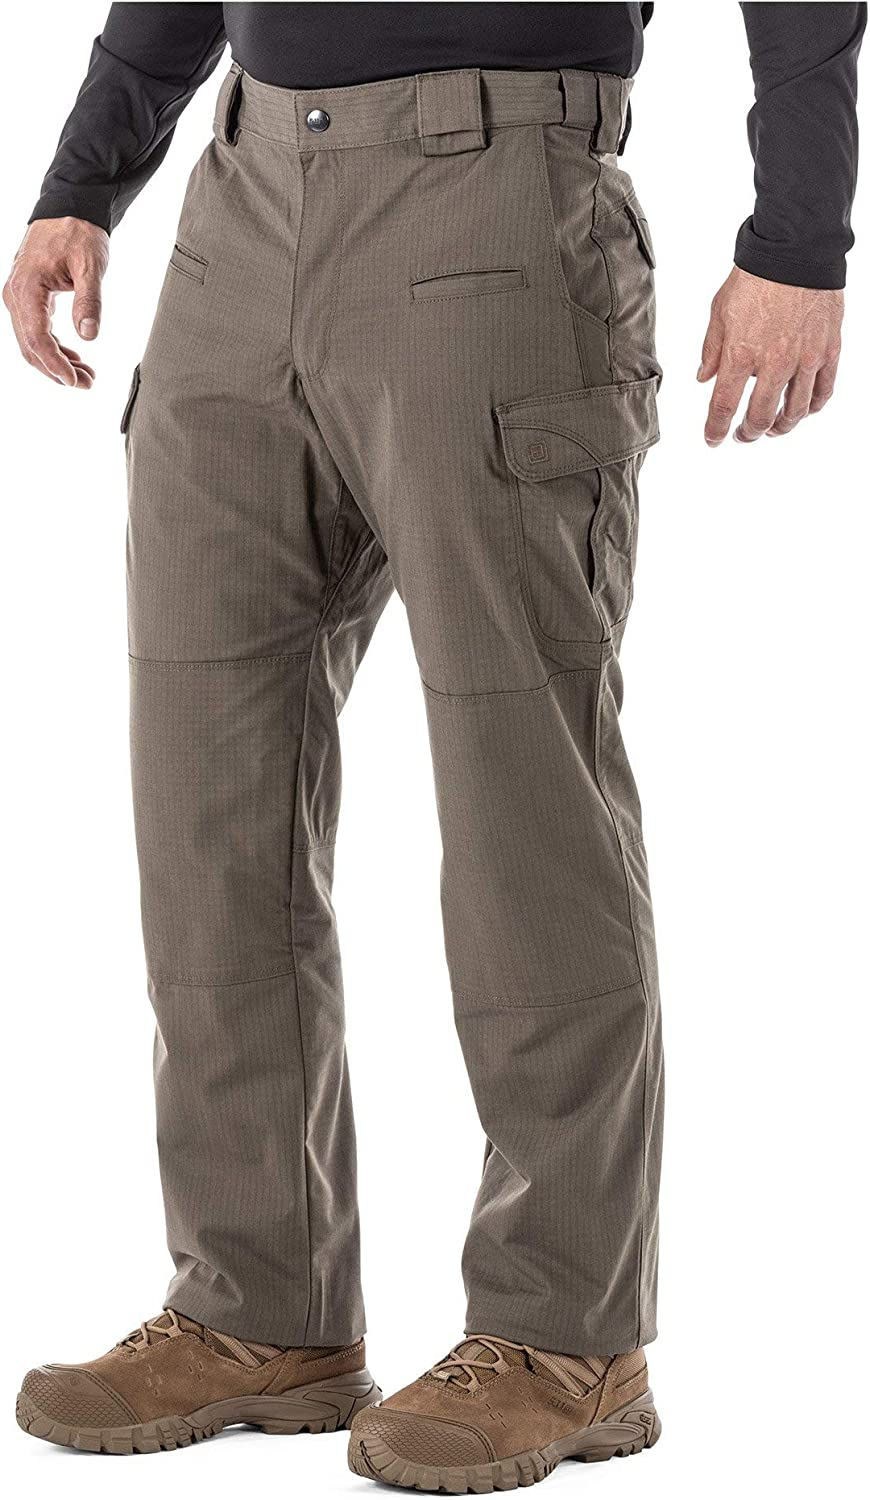 Style 74369 5.11 STRYKE Tactical Pant